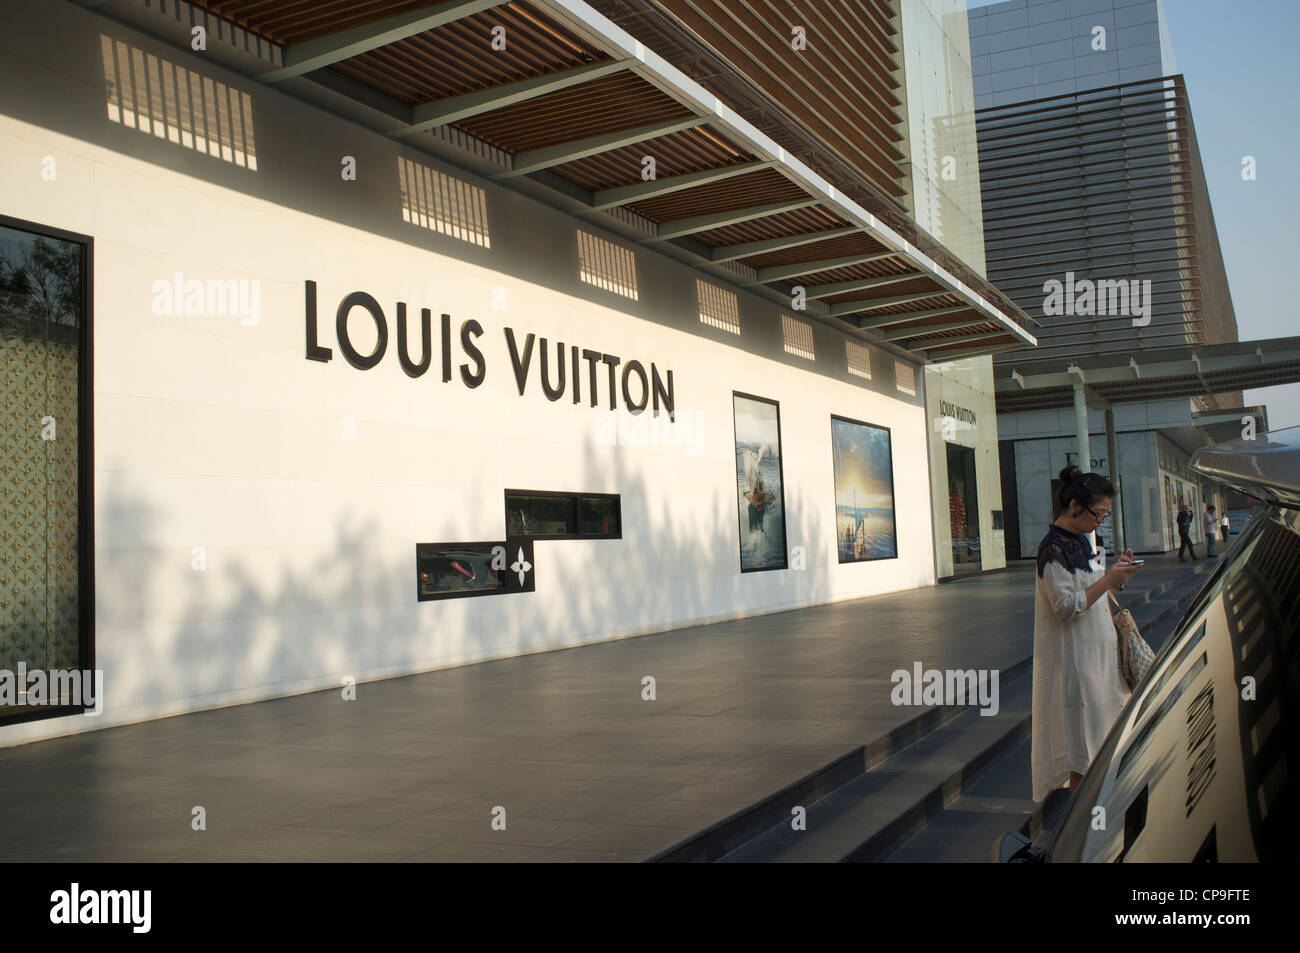 0adcb1a48aa79 Louis Vuitton Luxury Goods Store Stock Photos   Louis Vuitton Luxury ...